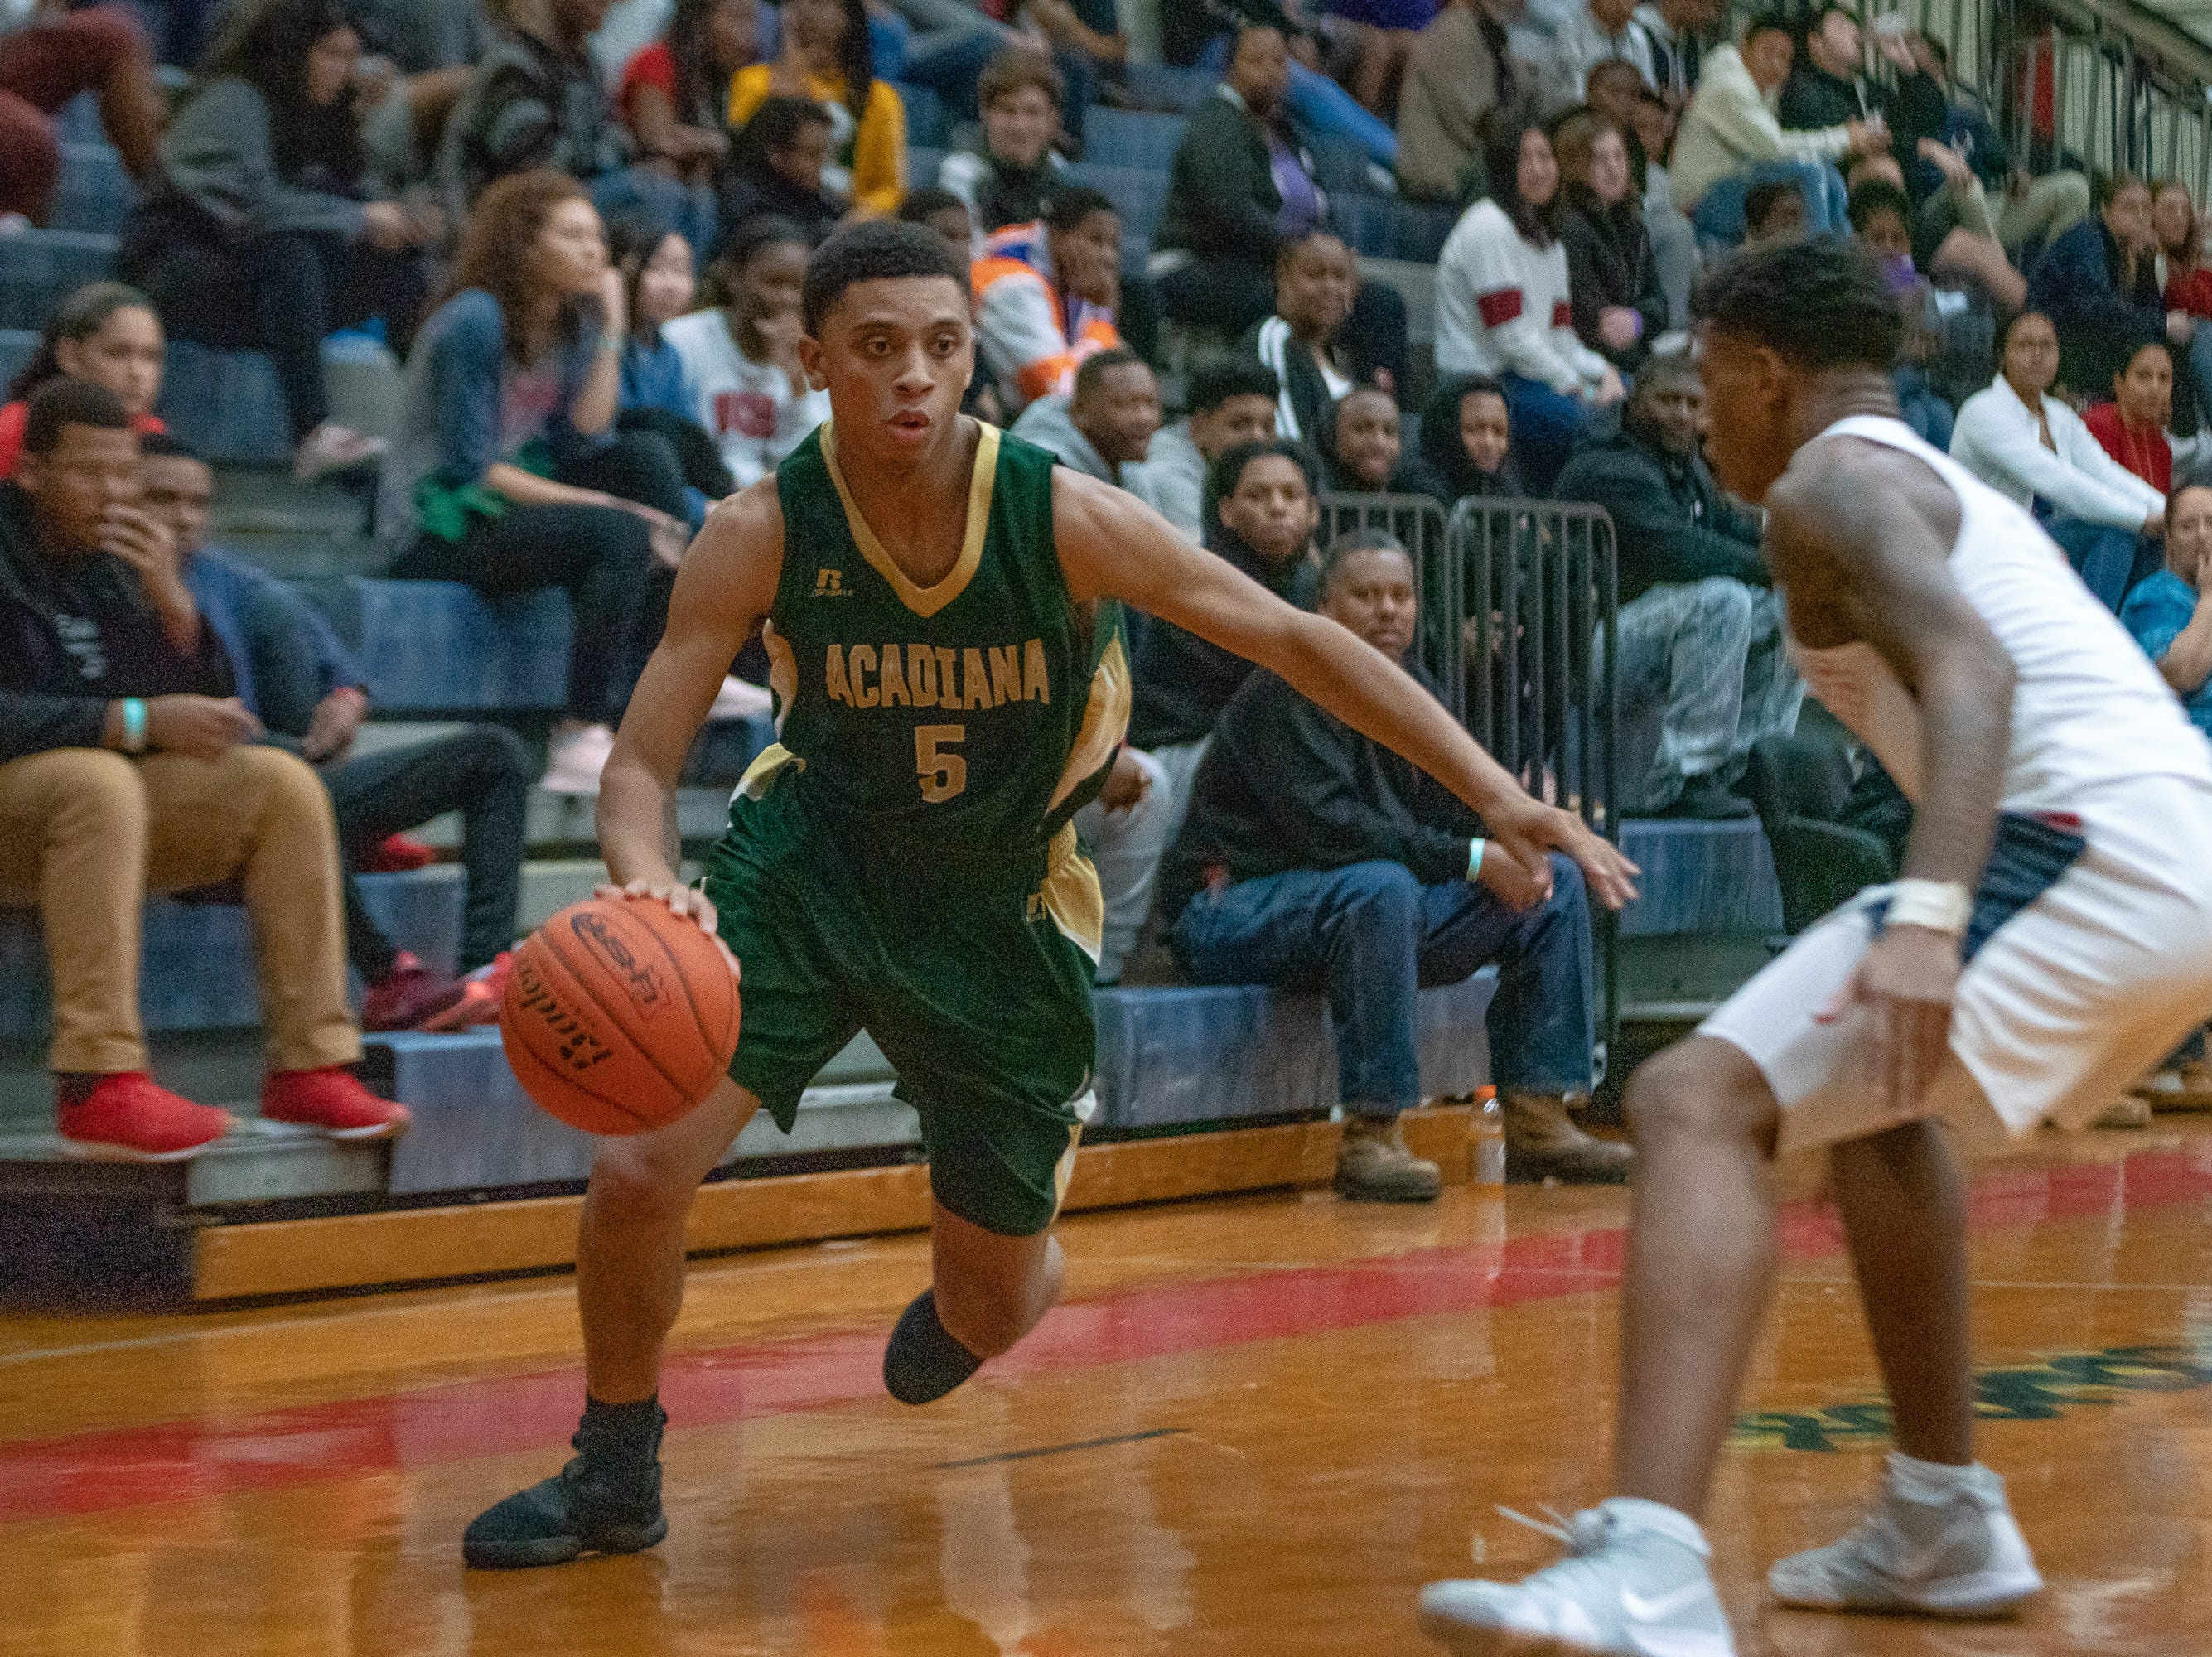 Acadiana High's Michael August (5) drives the ball to the basket as the Comeaux High Spartans take on the Acadiana High Wreckin' Rams at Comeaux high school on Jan. 25, 2019.